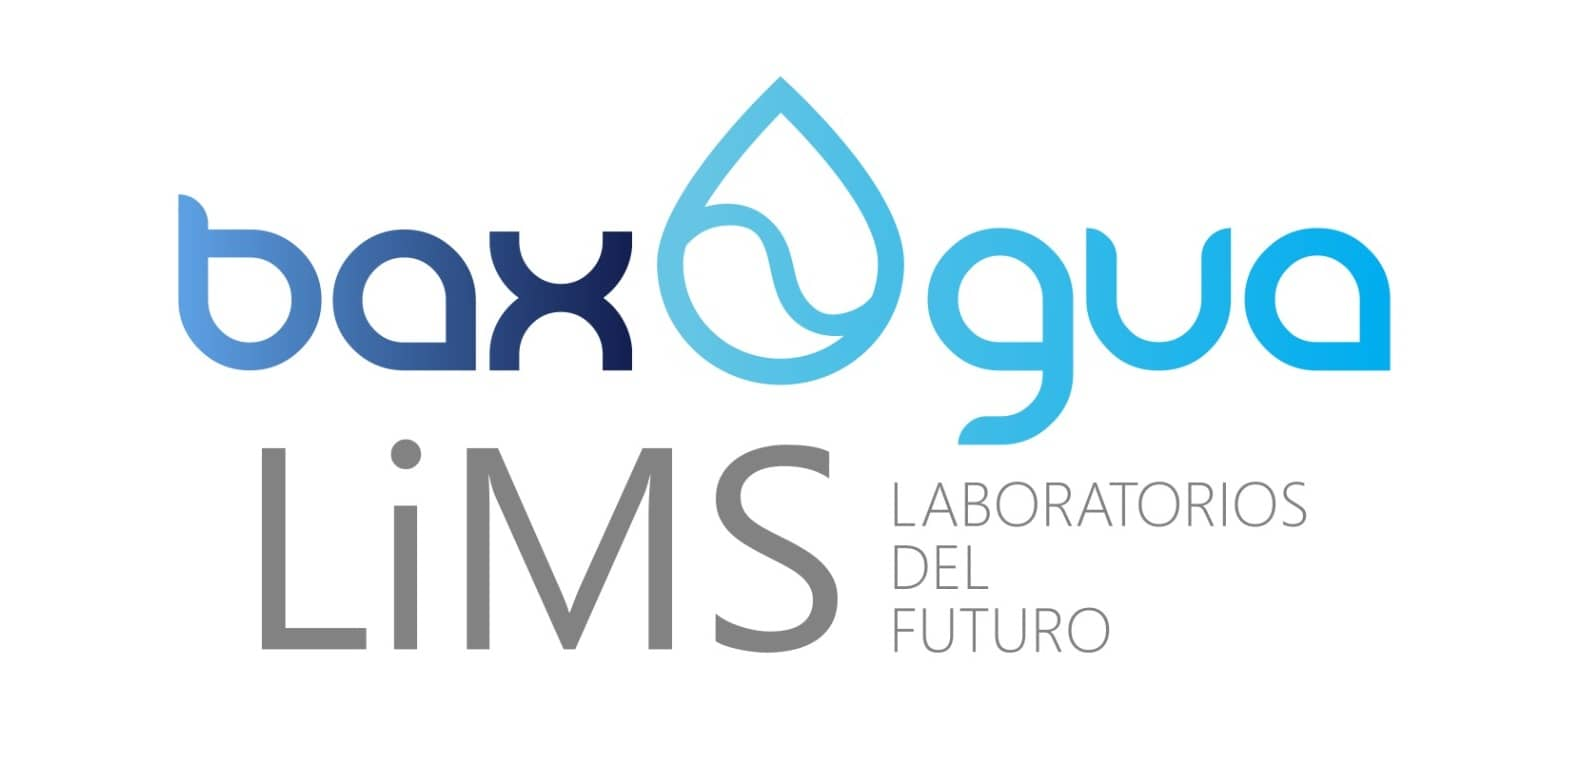 Software de Gestión Ambiental | Software para Aguas | BaxAGUA